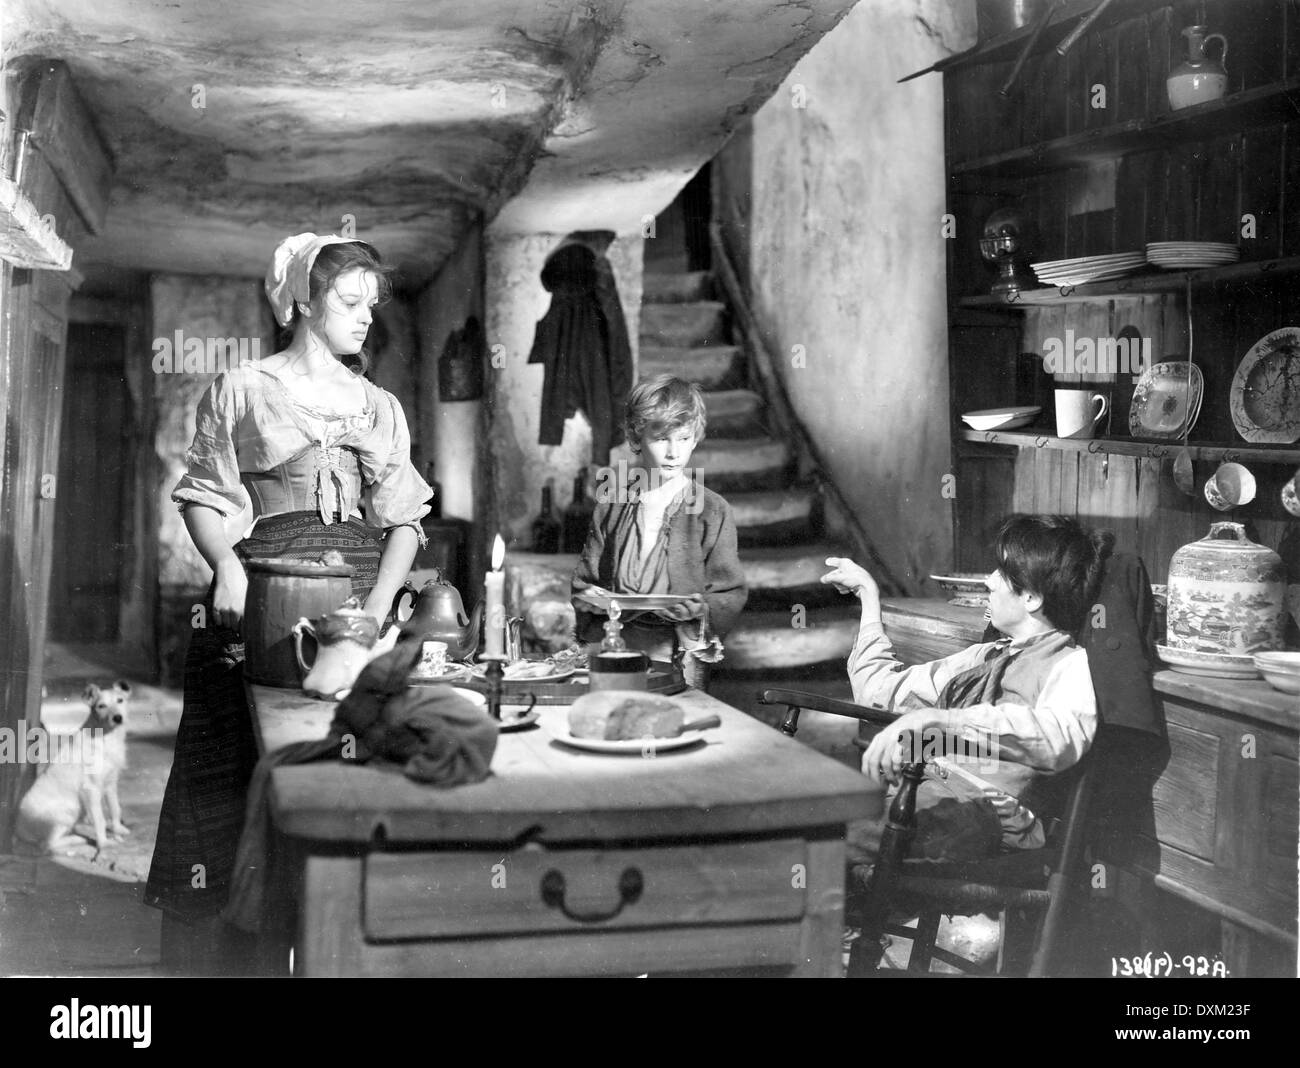 diana dors oliver twist 1948 high resolution stock photography and images alamy https www alamy com oliver twist image68052867 html